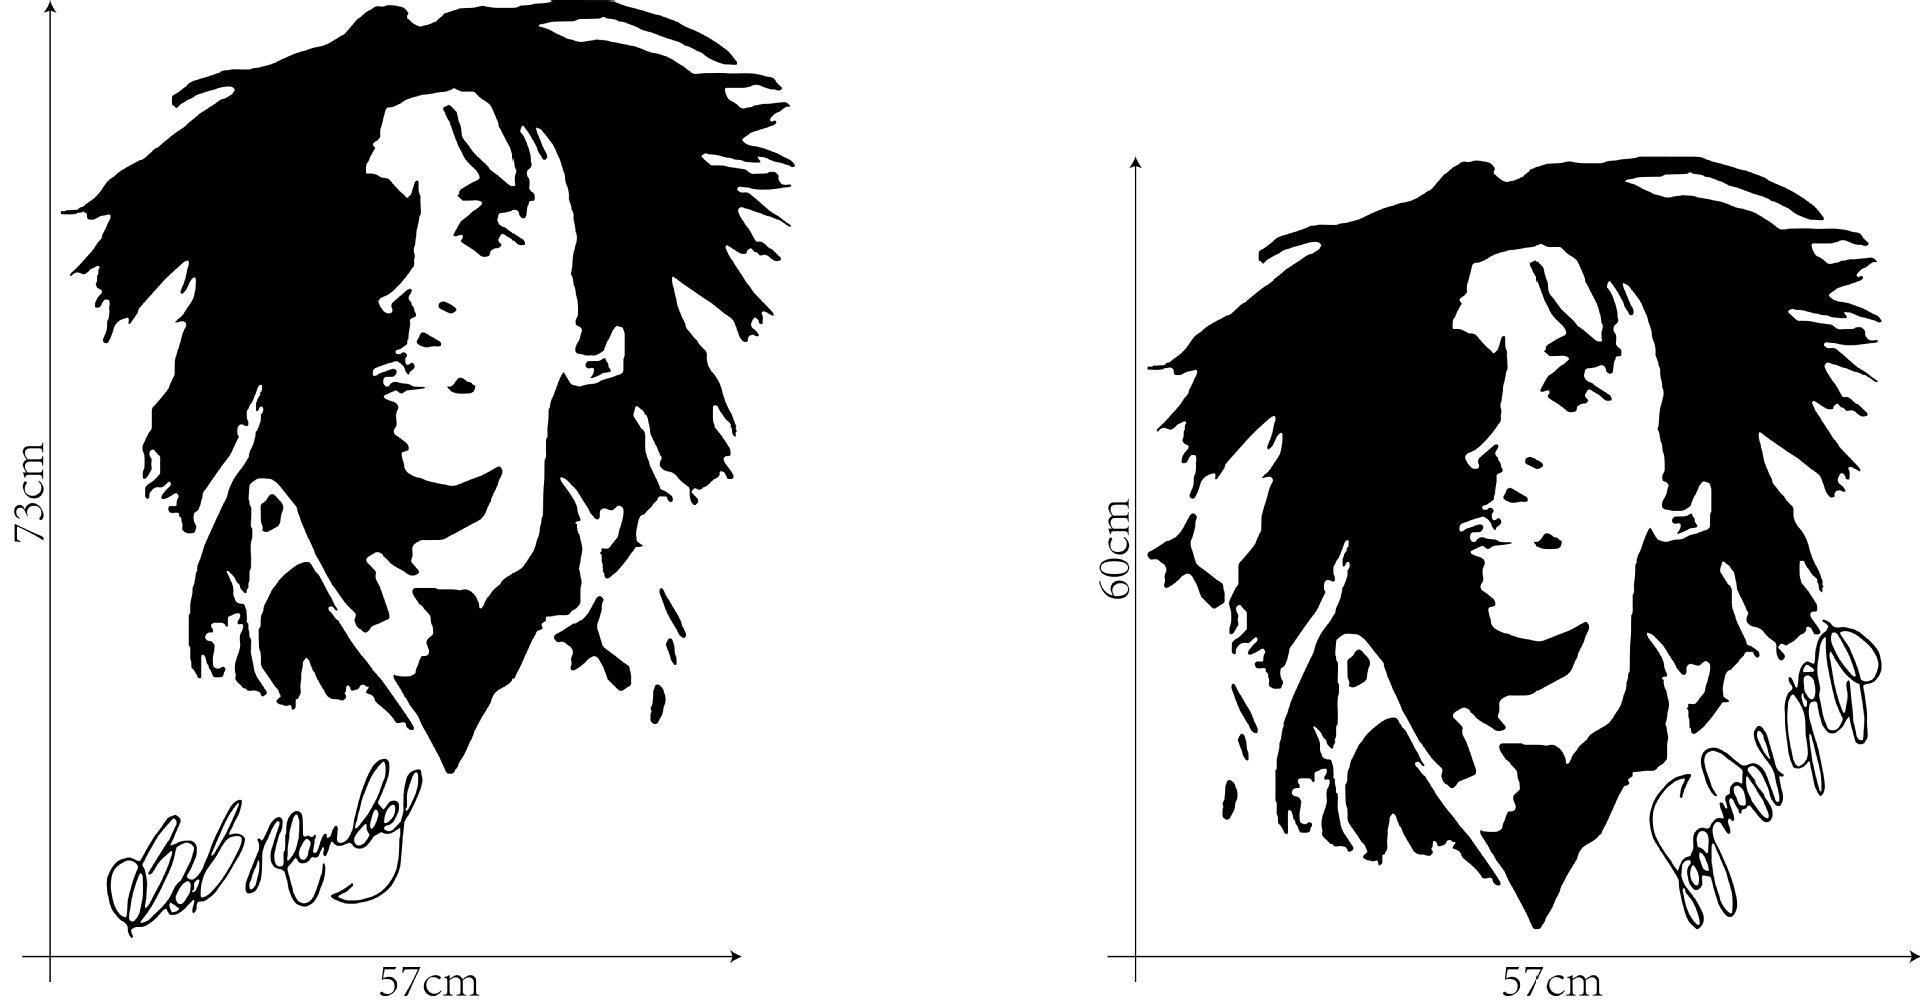 Popular Singer Bob Marley Wall Stickers Home Decor Removable PVC Wallpaper Posters DIY Decorative Wall Graphic Silhouette Mural